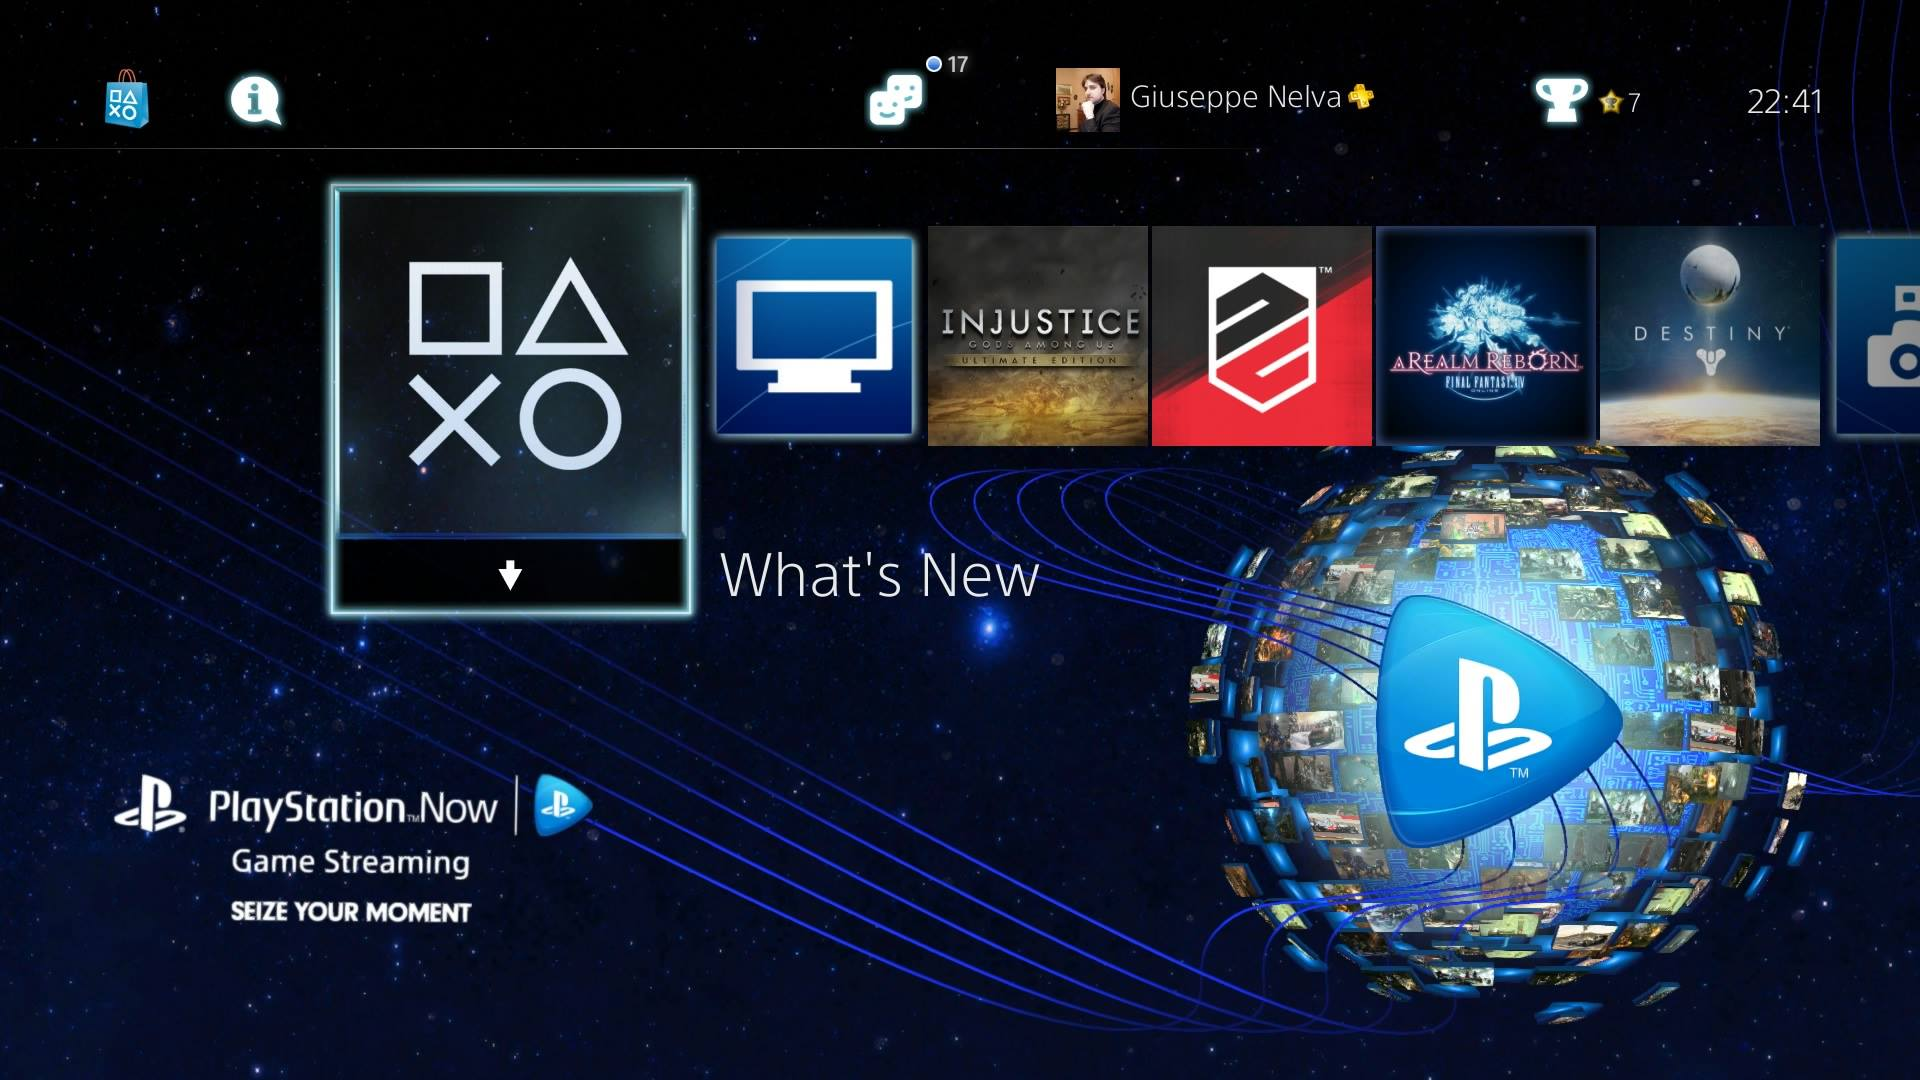 Ps3 Animated Wallpaper Free Playstation Now Ps4 Dynamic Theme Just Released By